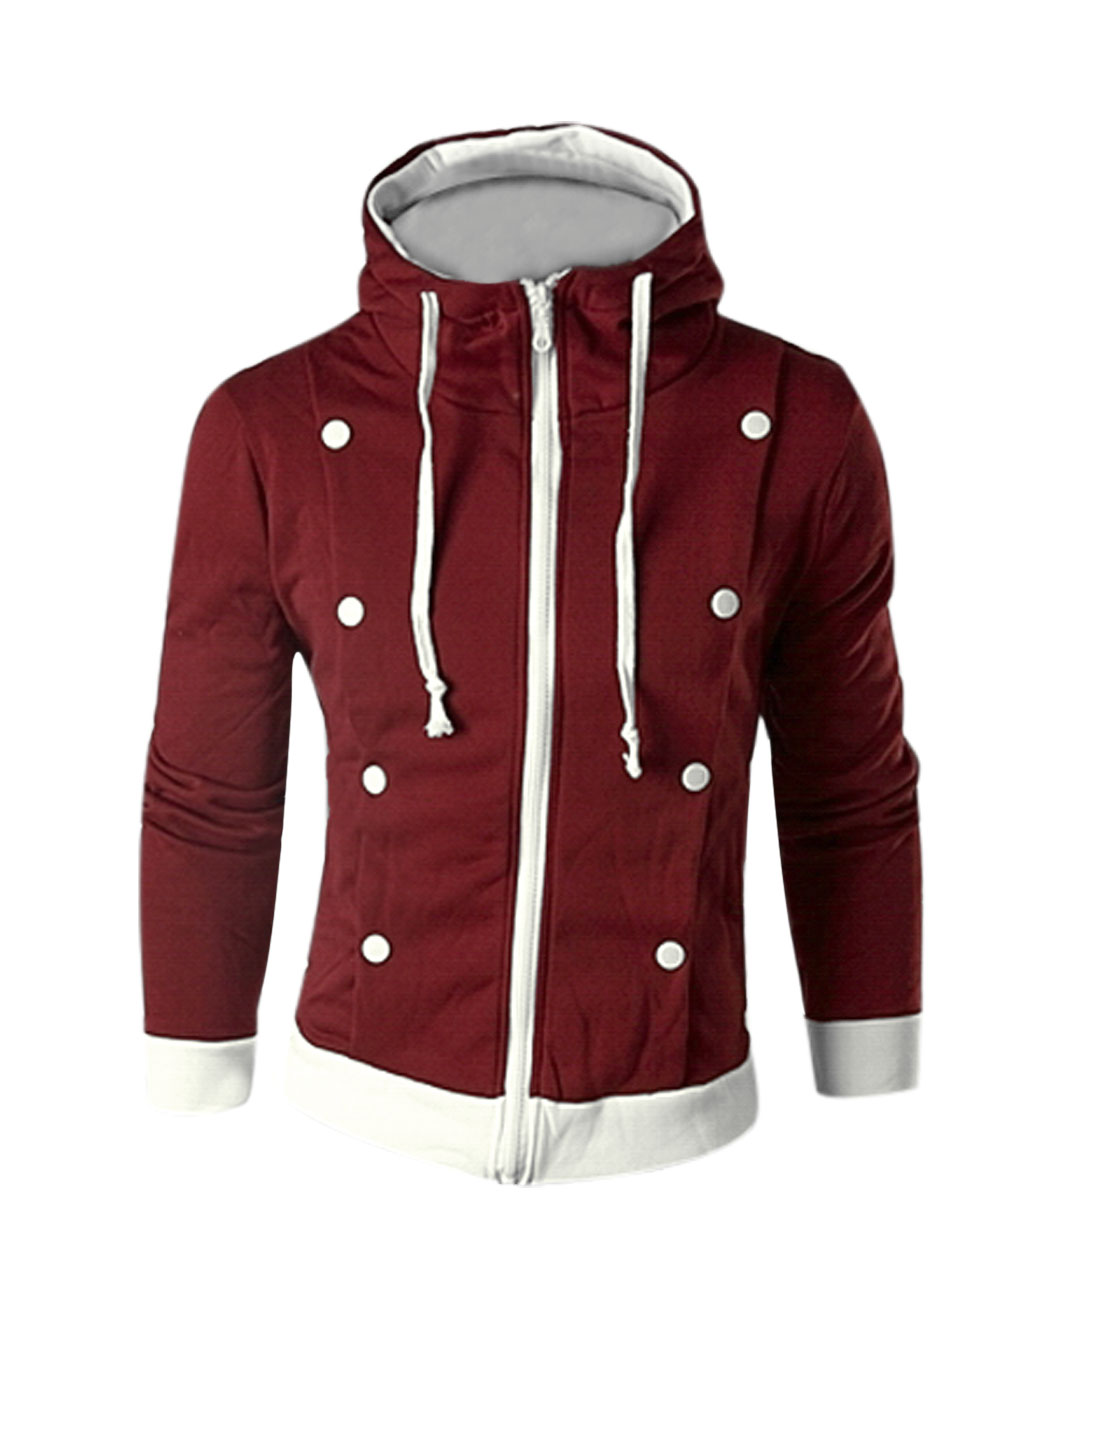 Man Burgundy Panel Zipper Front Drawstring Detail Hoodie Jacket S